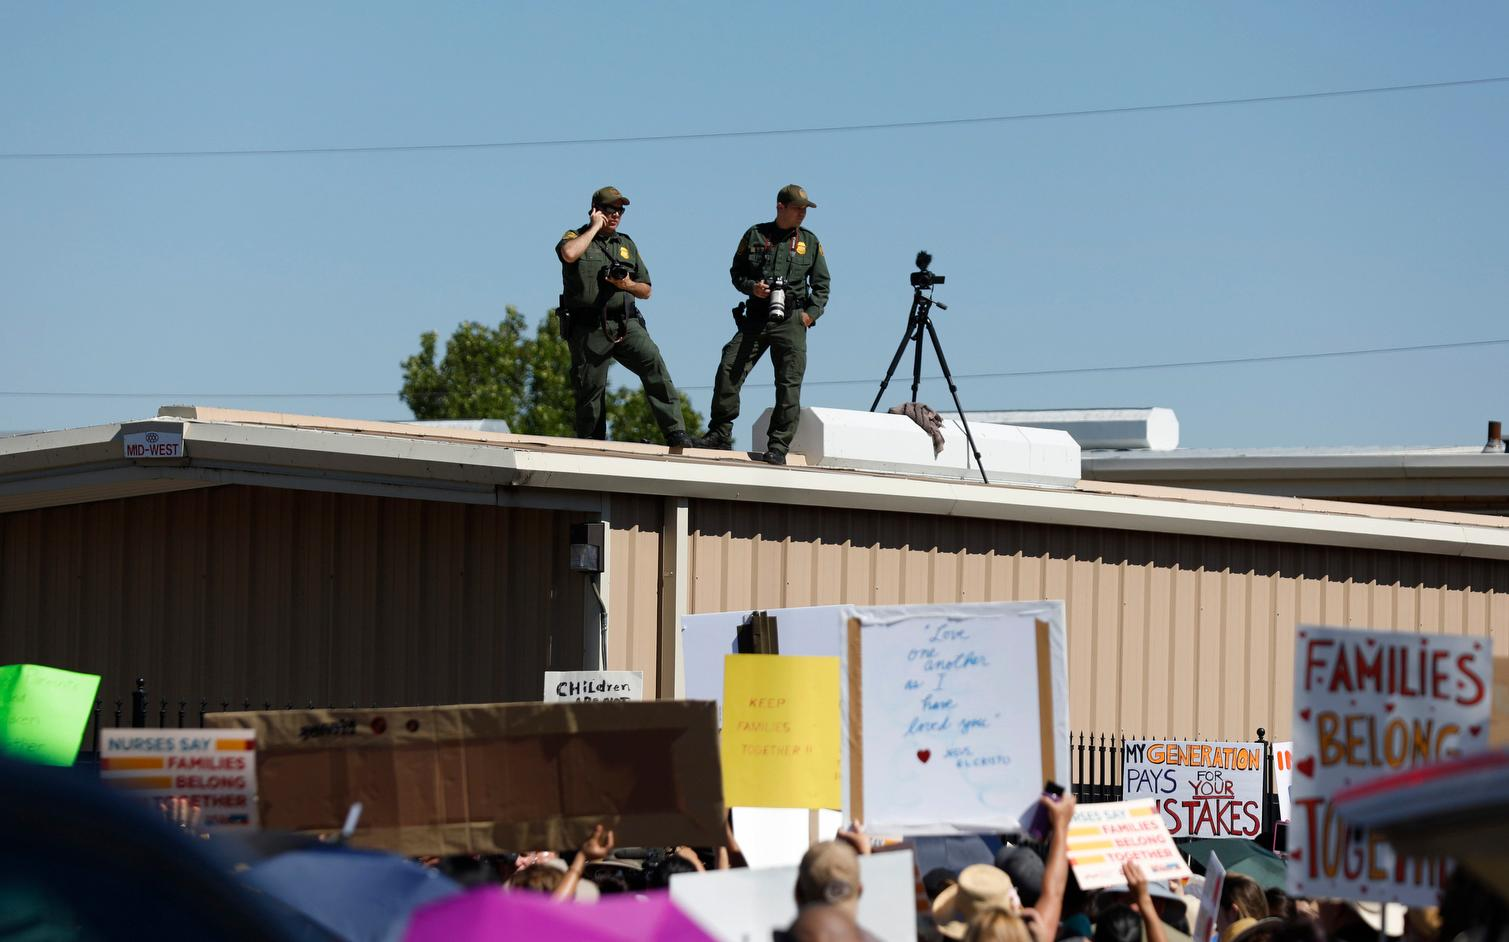 U.S. Border Patrol agents watch as they take photos and video of the crowd protesting outside the U.S. Immigration and Customs Enforcement processing center in El Paso, Texas, Tuesday, June 19, 2018. (Ivan Pierre Aguirre/The San Antonio Express-News via AP)